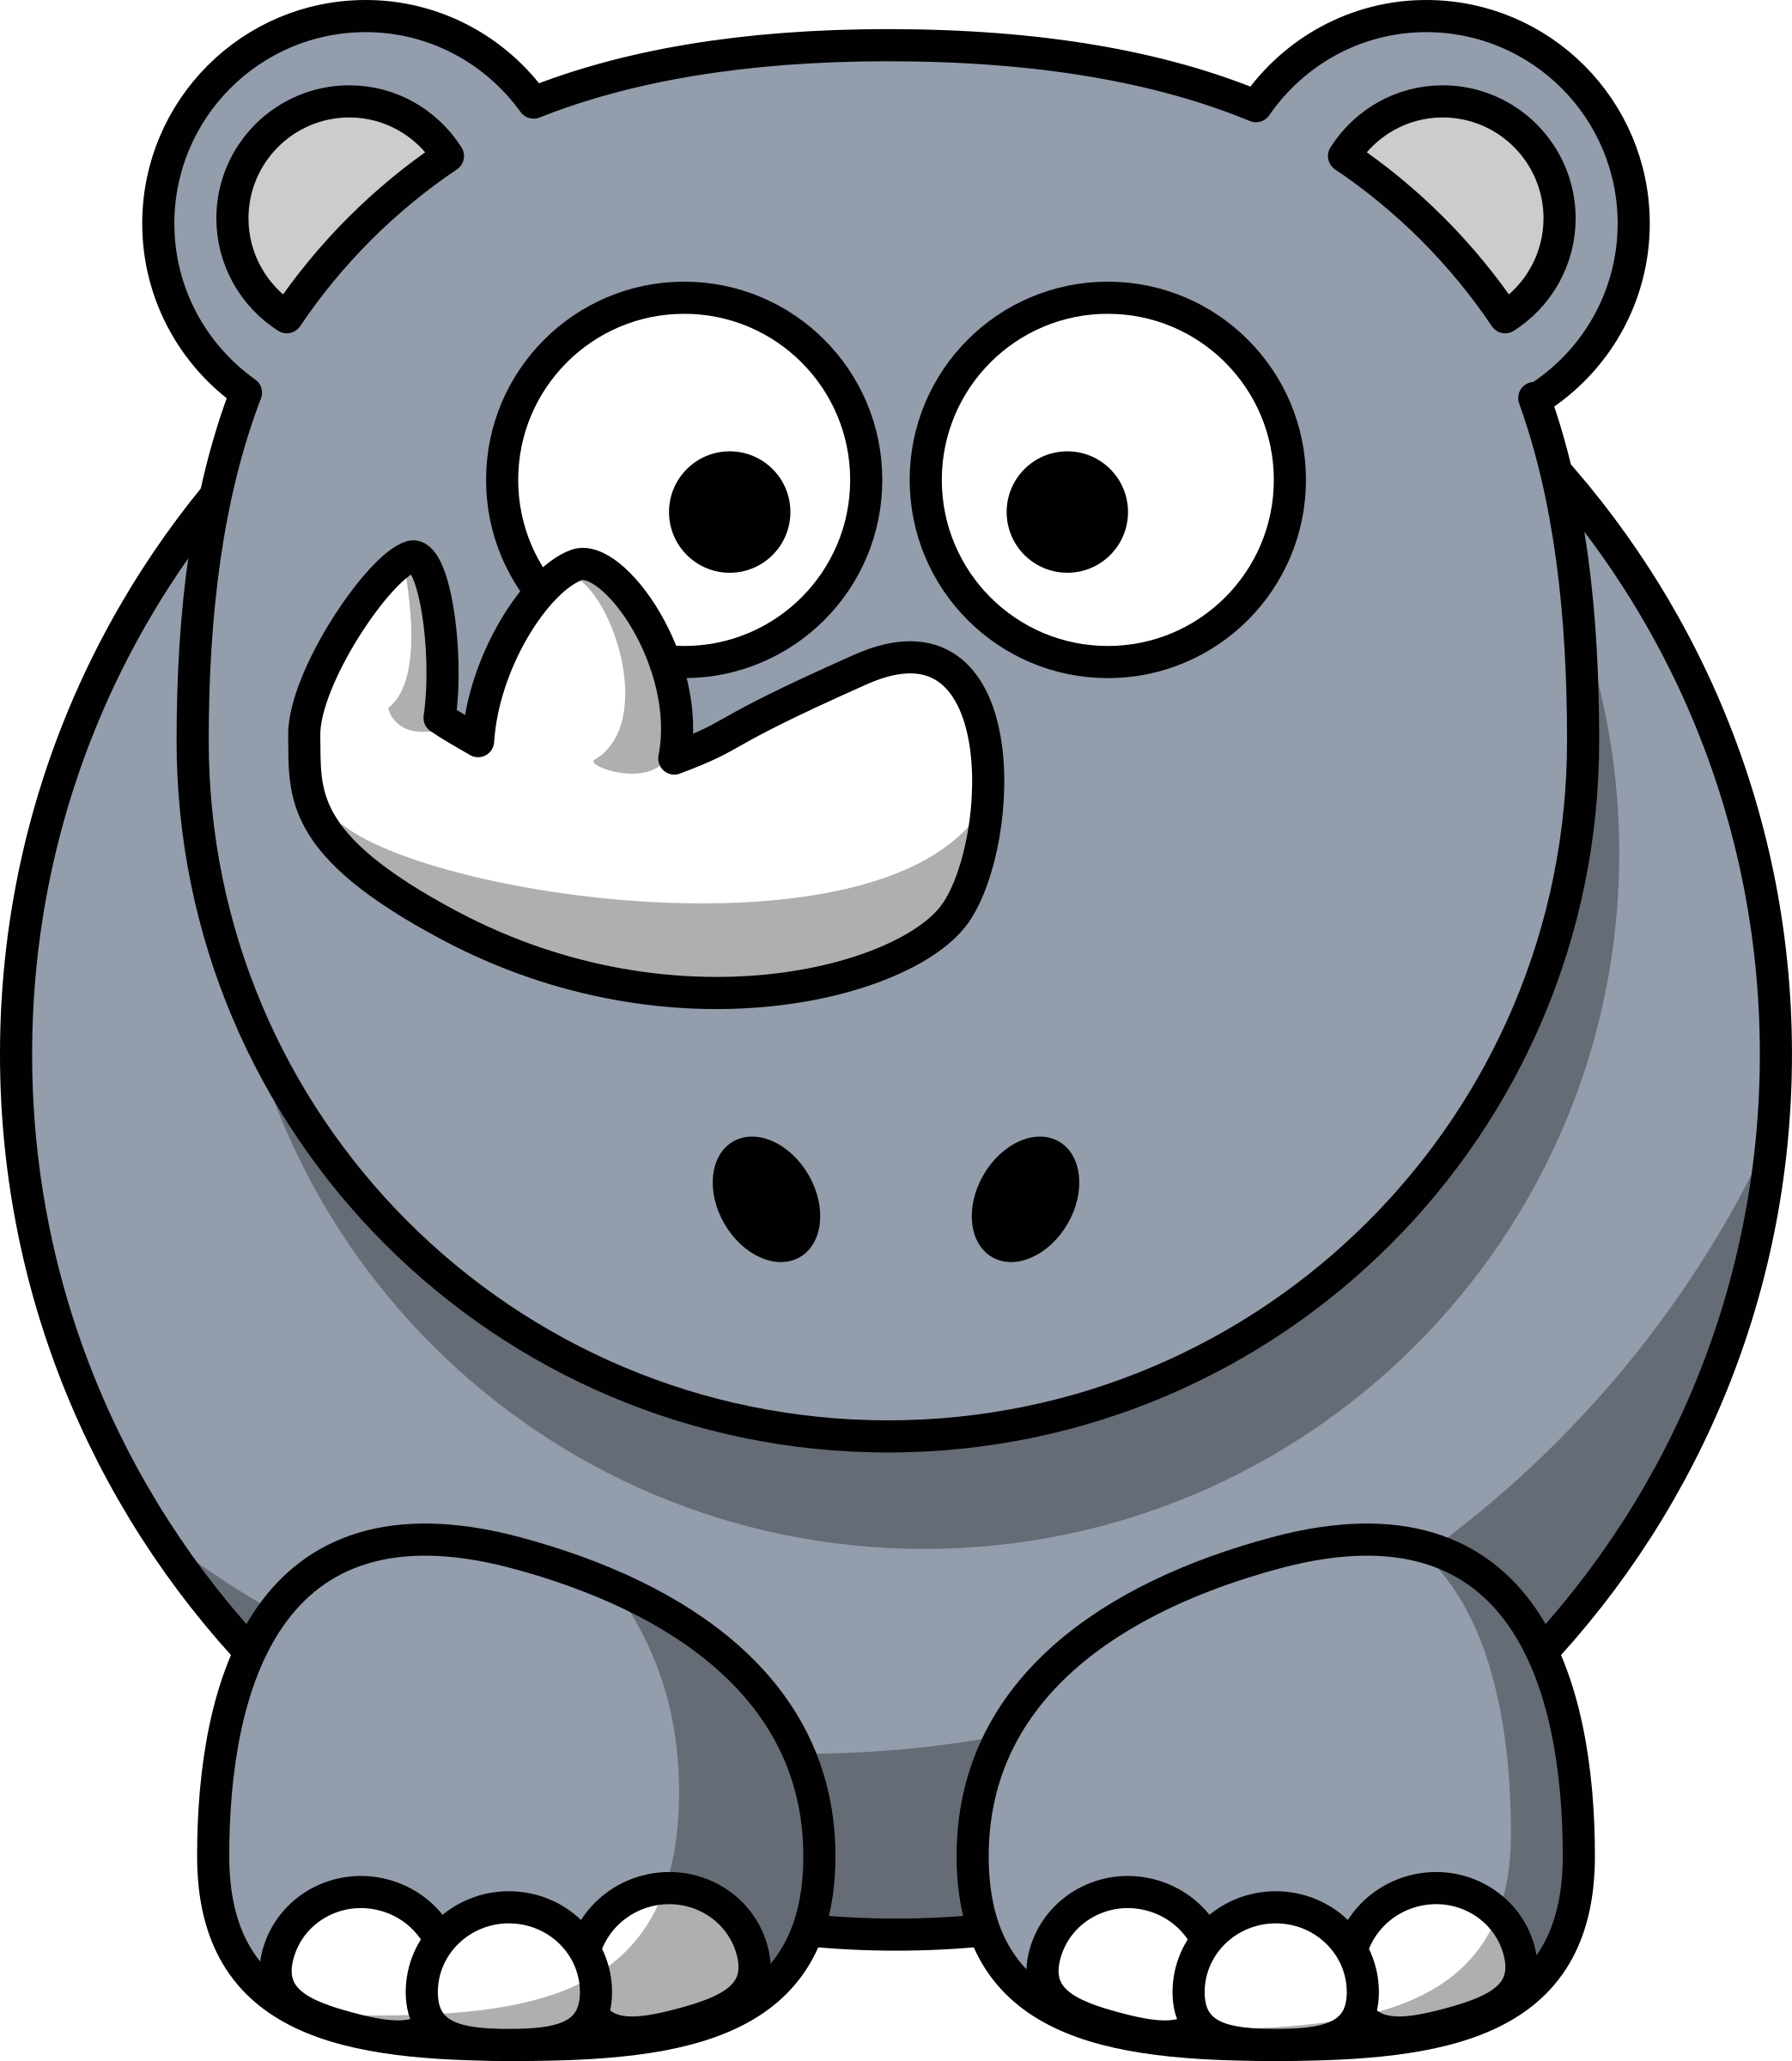 Cartoon rhino by StudioFibonacci